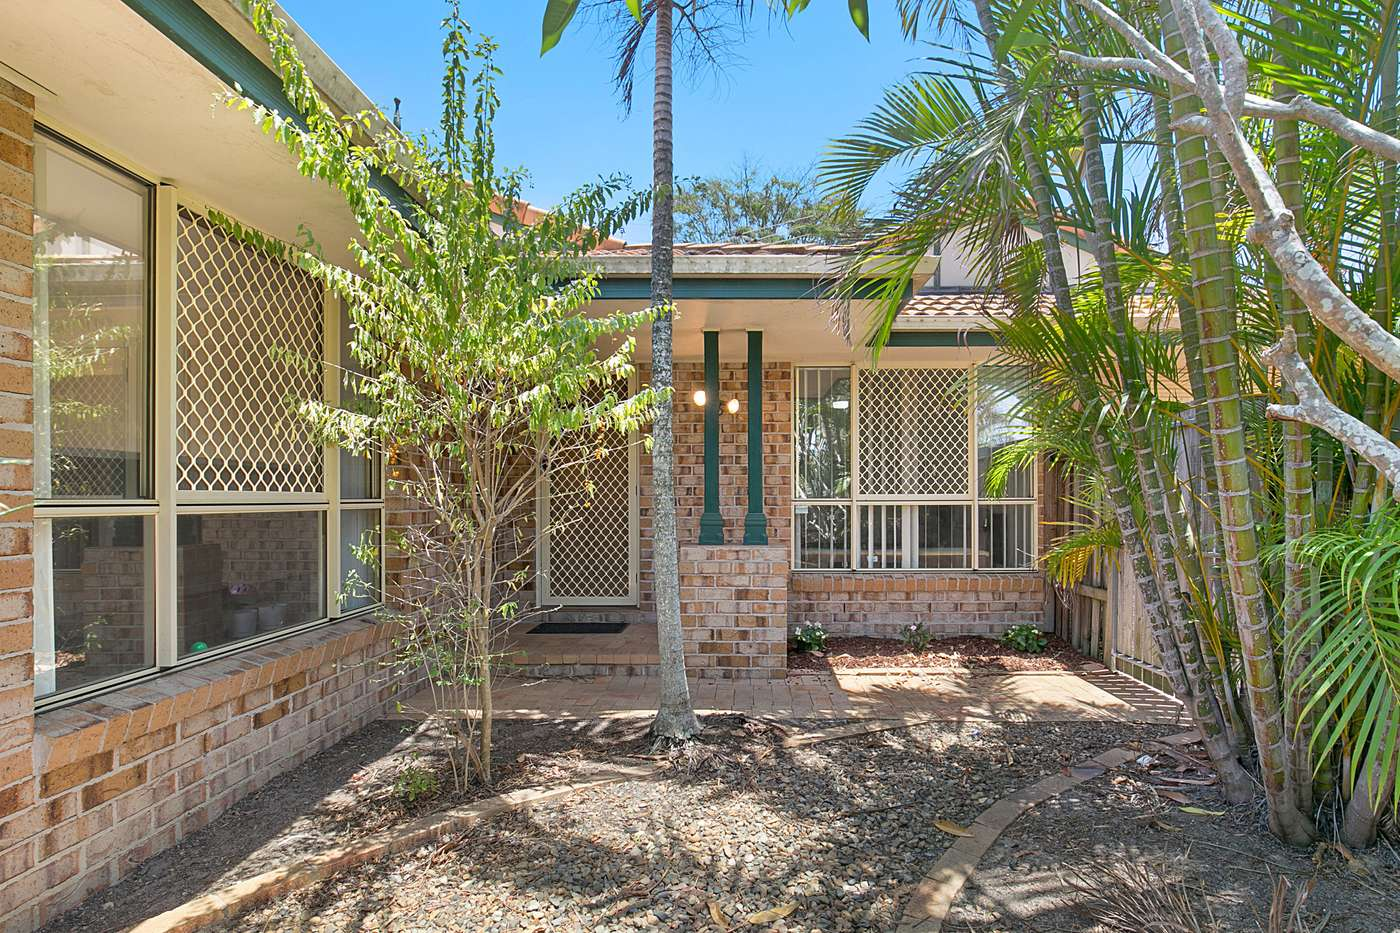 Main view of Homely house listing, 8 Taronga Court, Heritage Park, QLD 4118